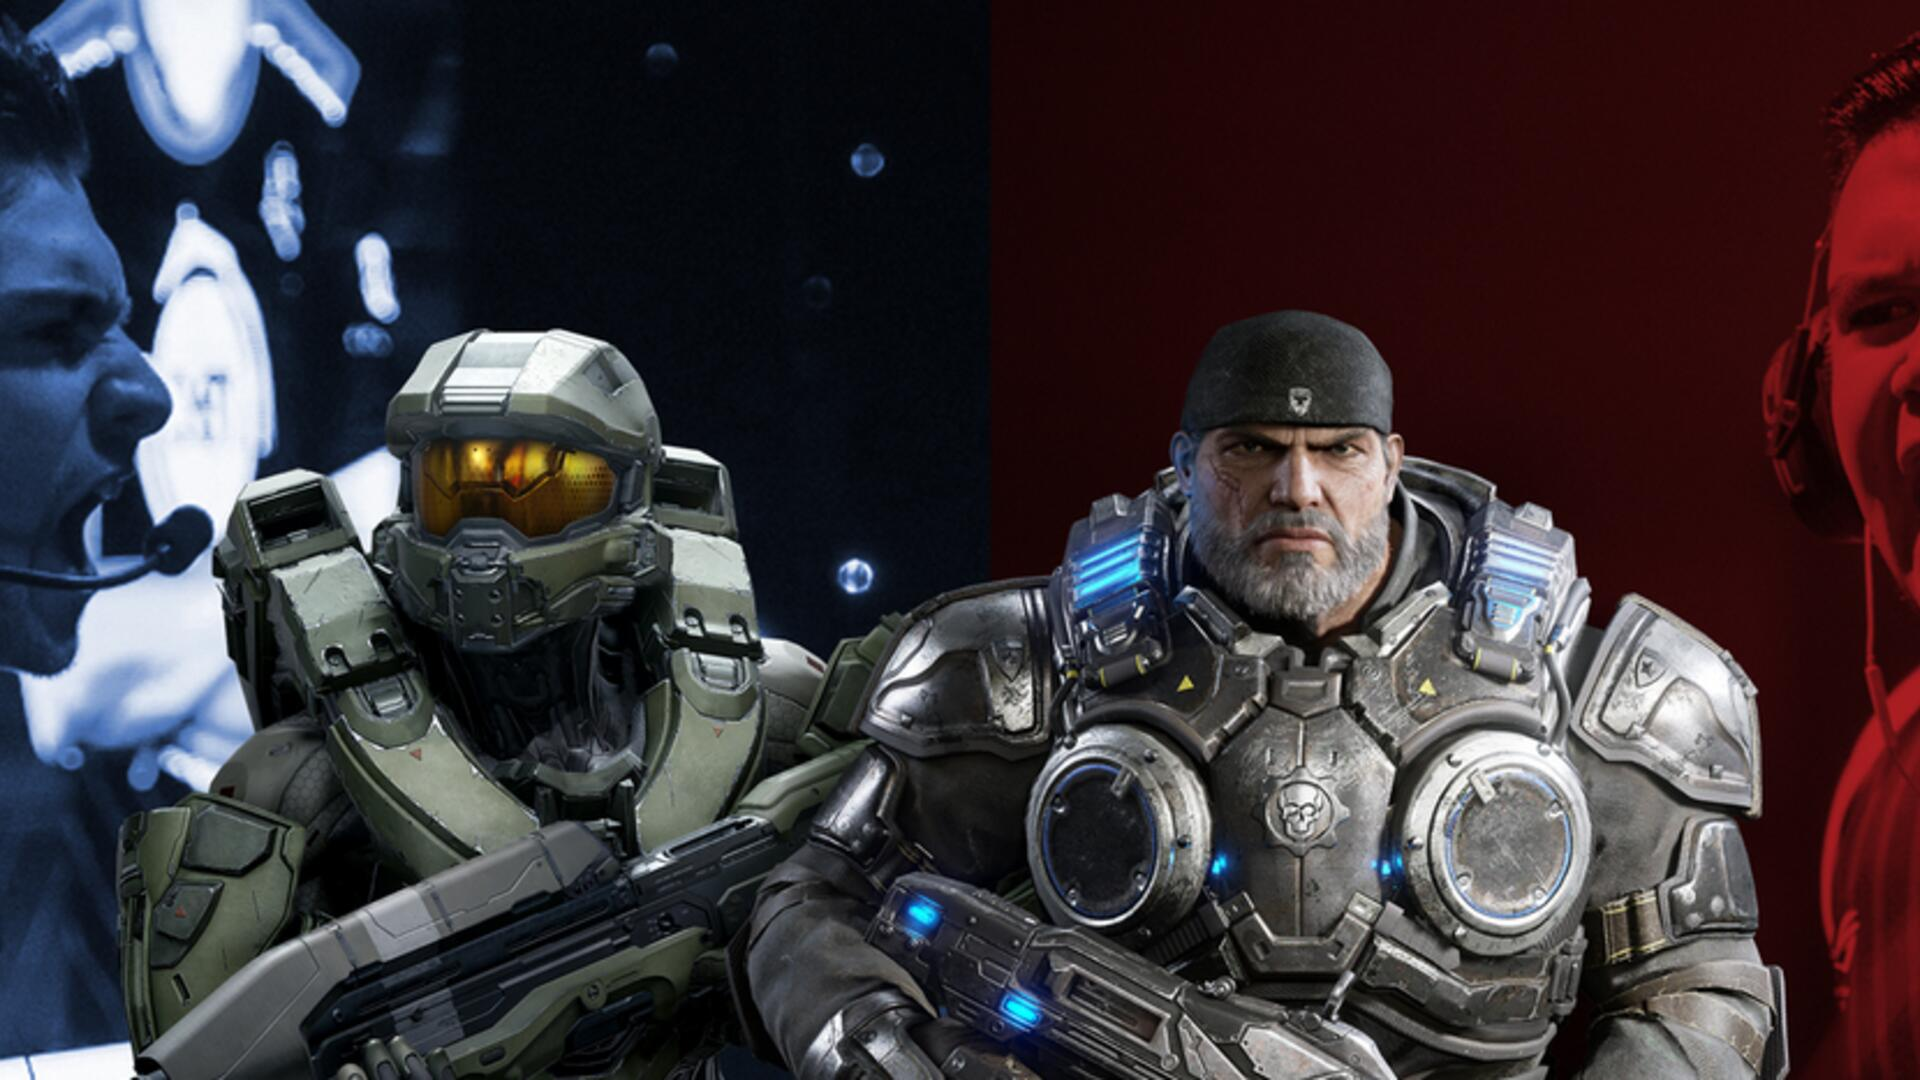 Halo 5 and Gears of War 4 Headline a Simultaneous Esports Tournament in New Orleans